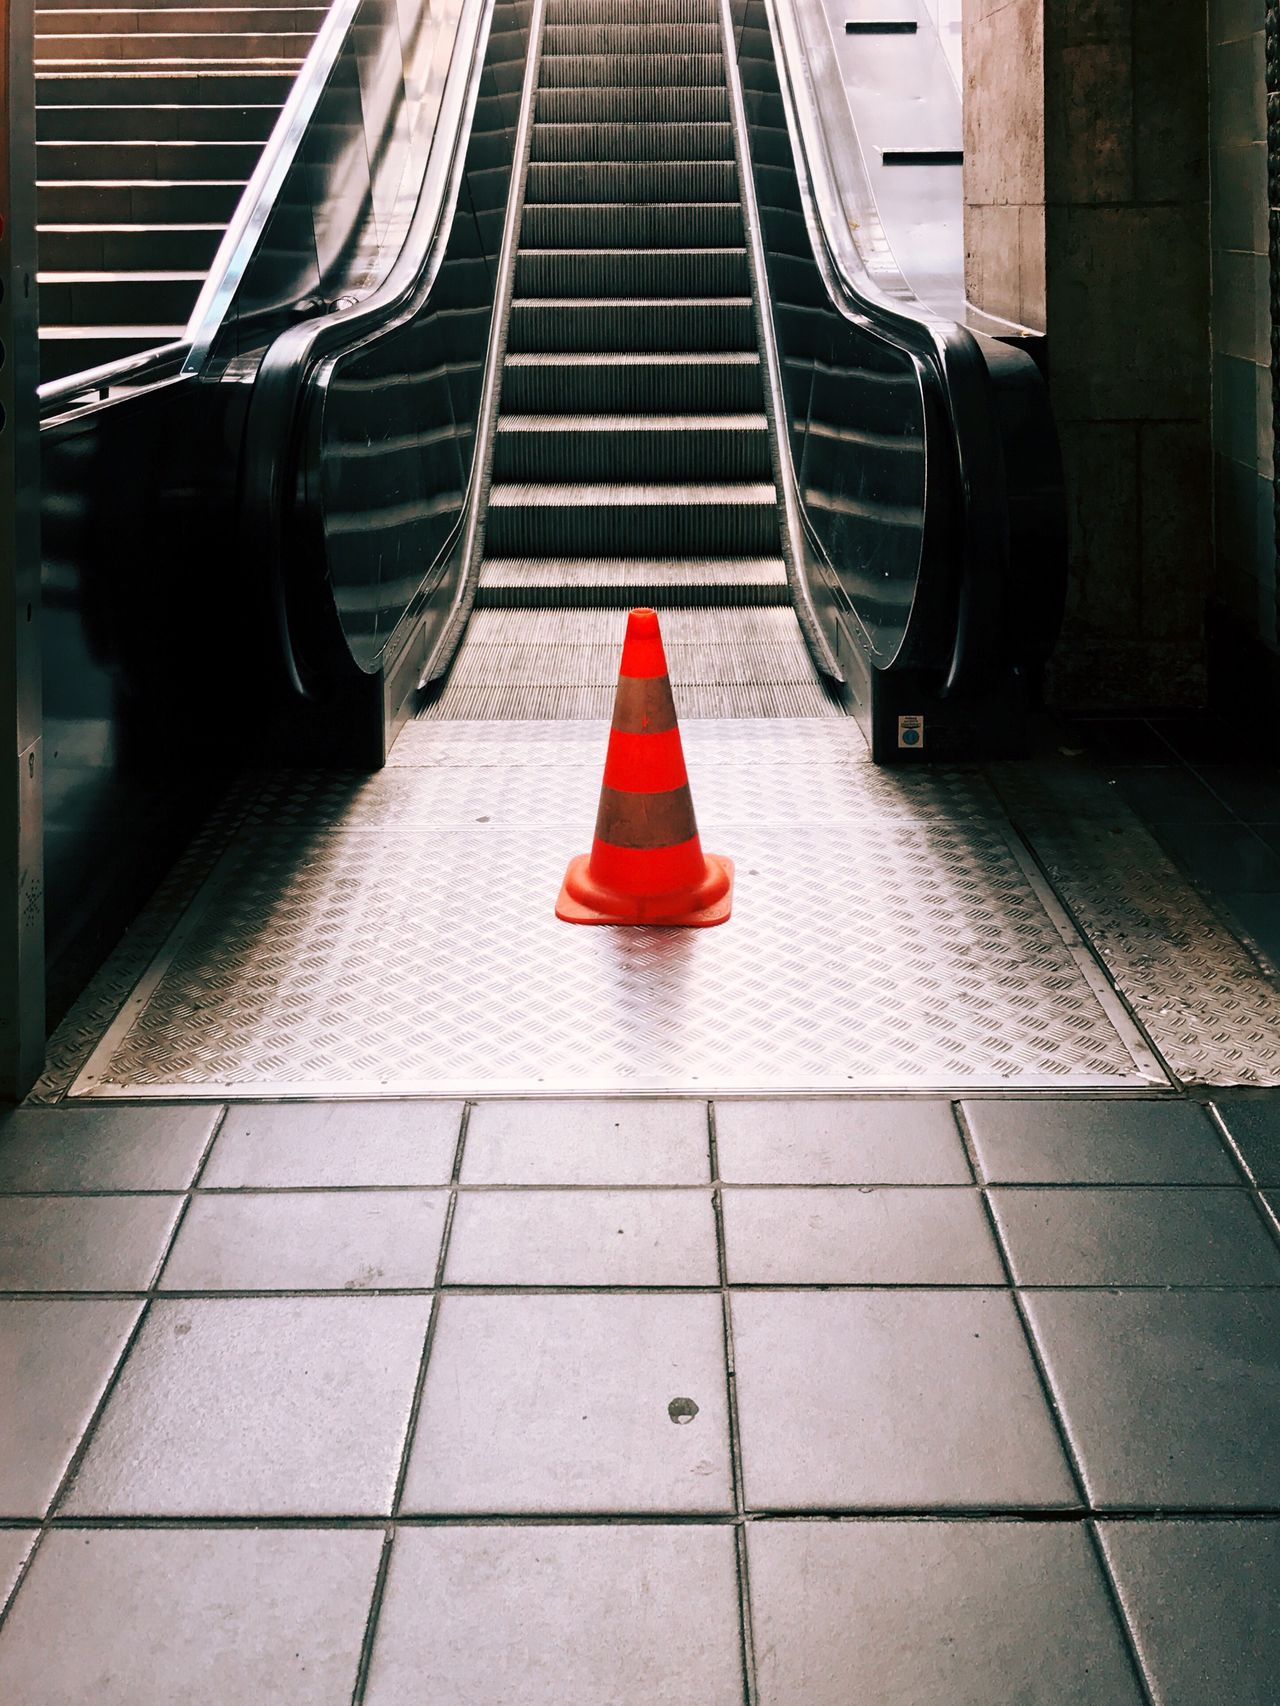 Red Transportation The Way Forward Day No People Outdoors Traffic Cone Construction Underground Stairs Stairways Sign